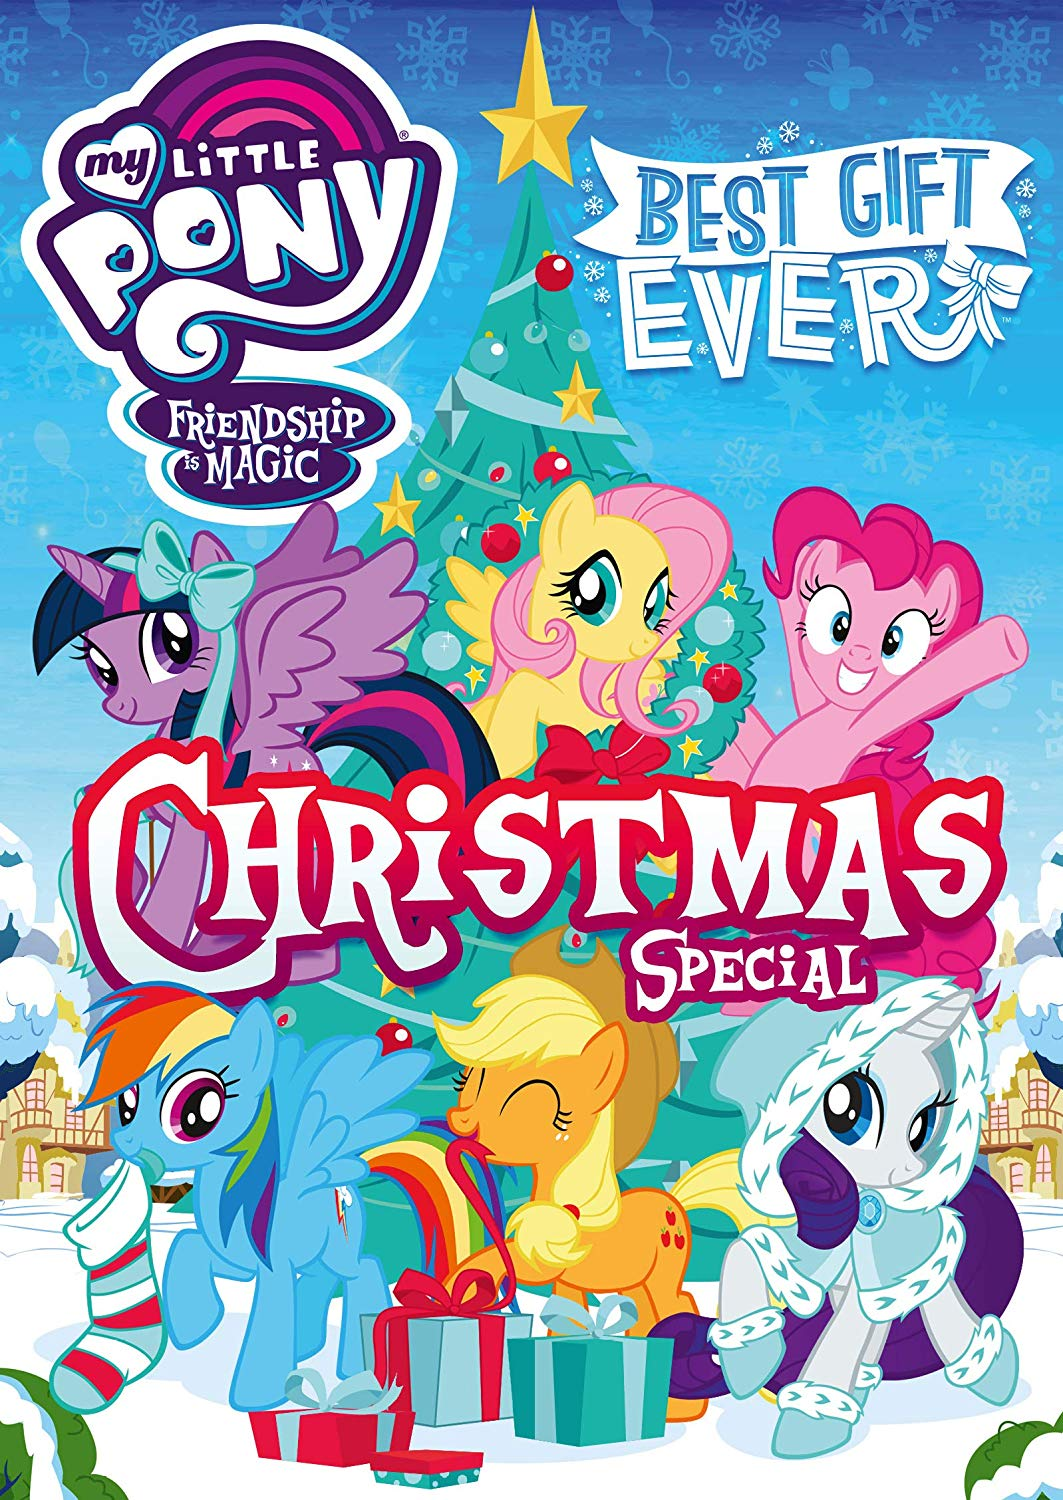 My Little Pony: Friendship is Magic: The Best Gift Ever   Twilight Sparkle's Media Library ...